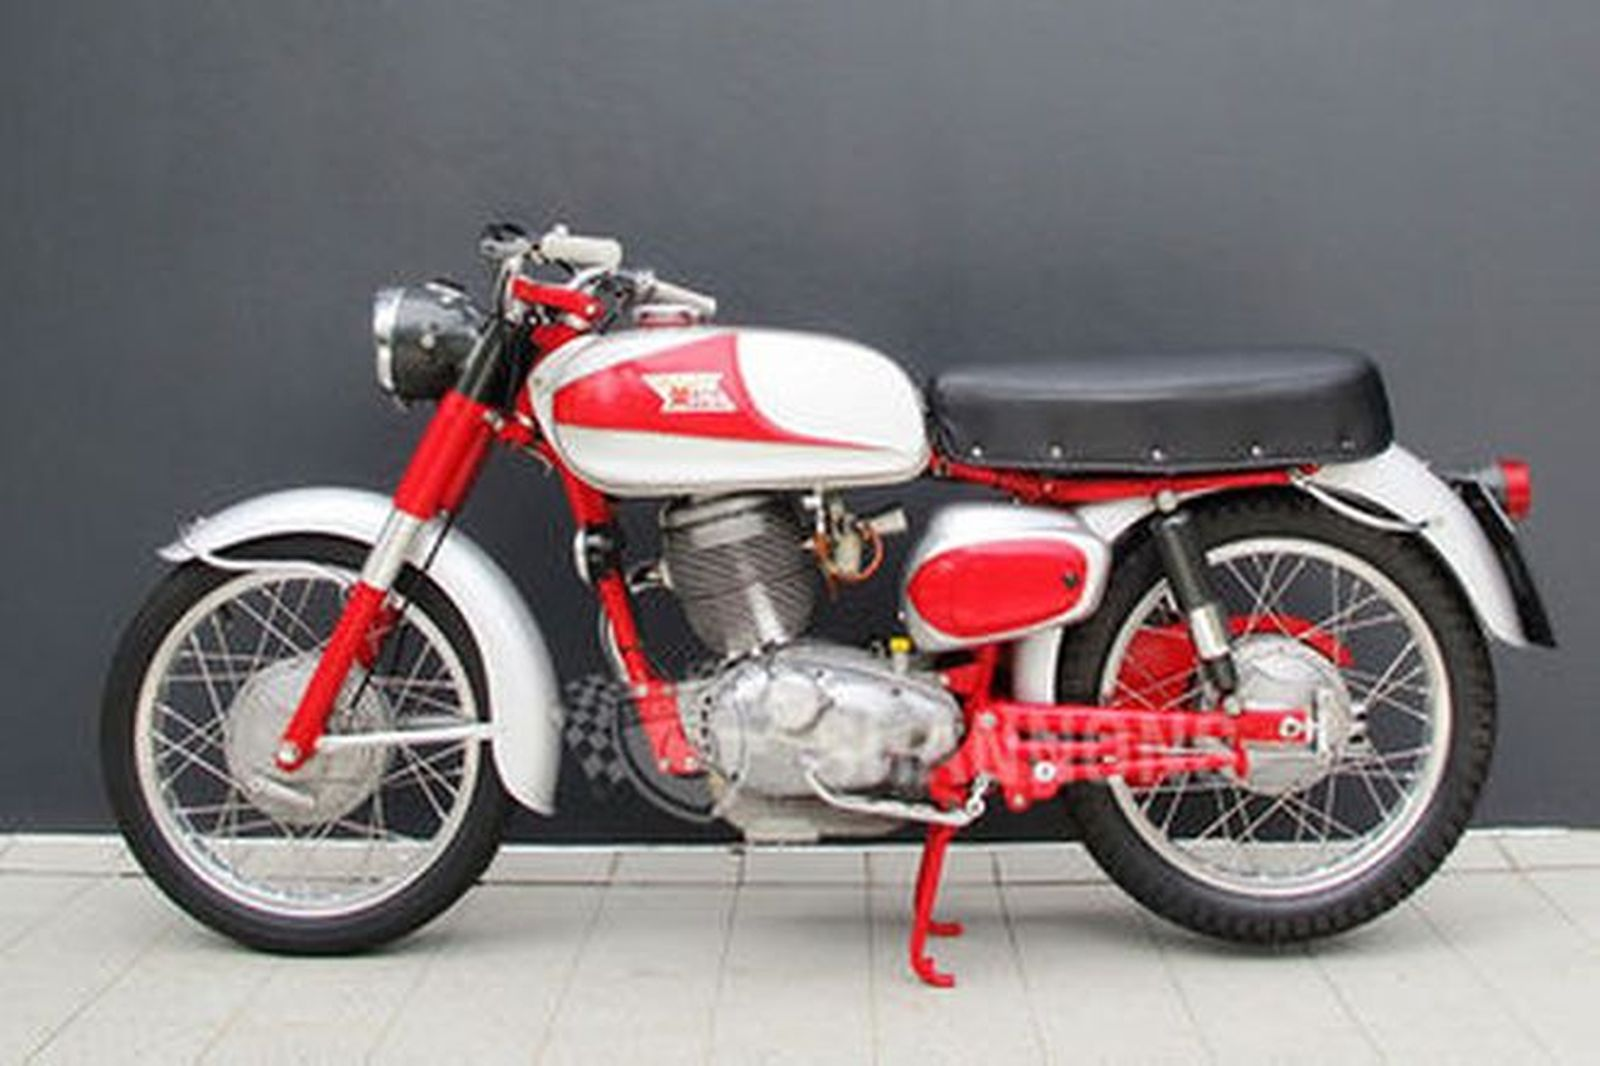 sold moto morini 250cc motorcycle auctions lot ai shannons. Black Bedroom Furniture Sets. Home Design Ideas